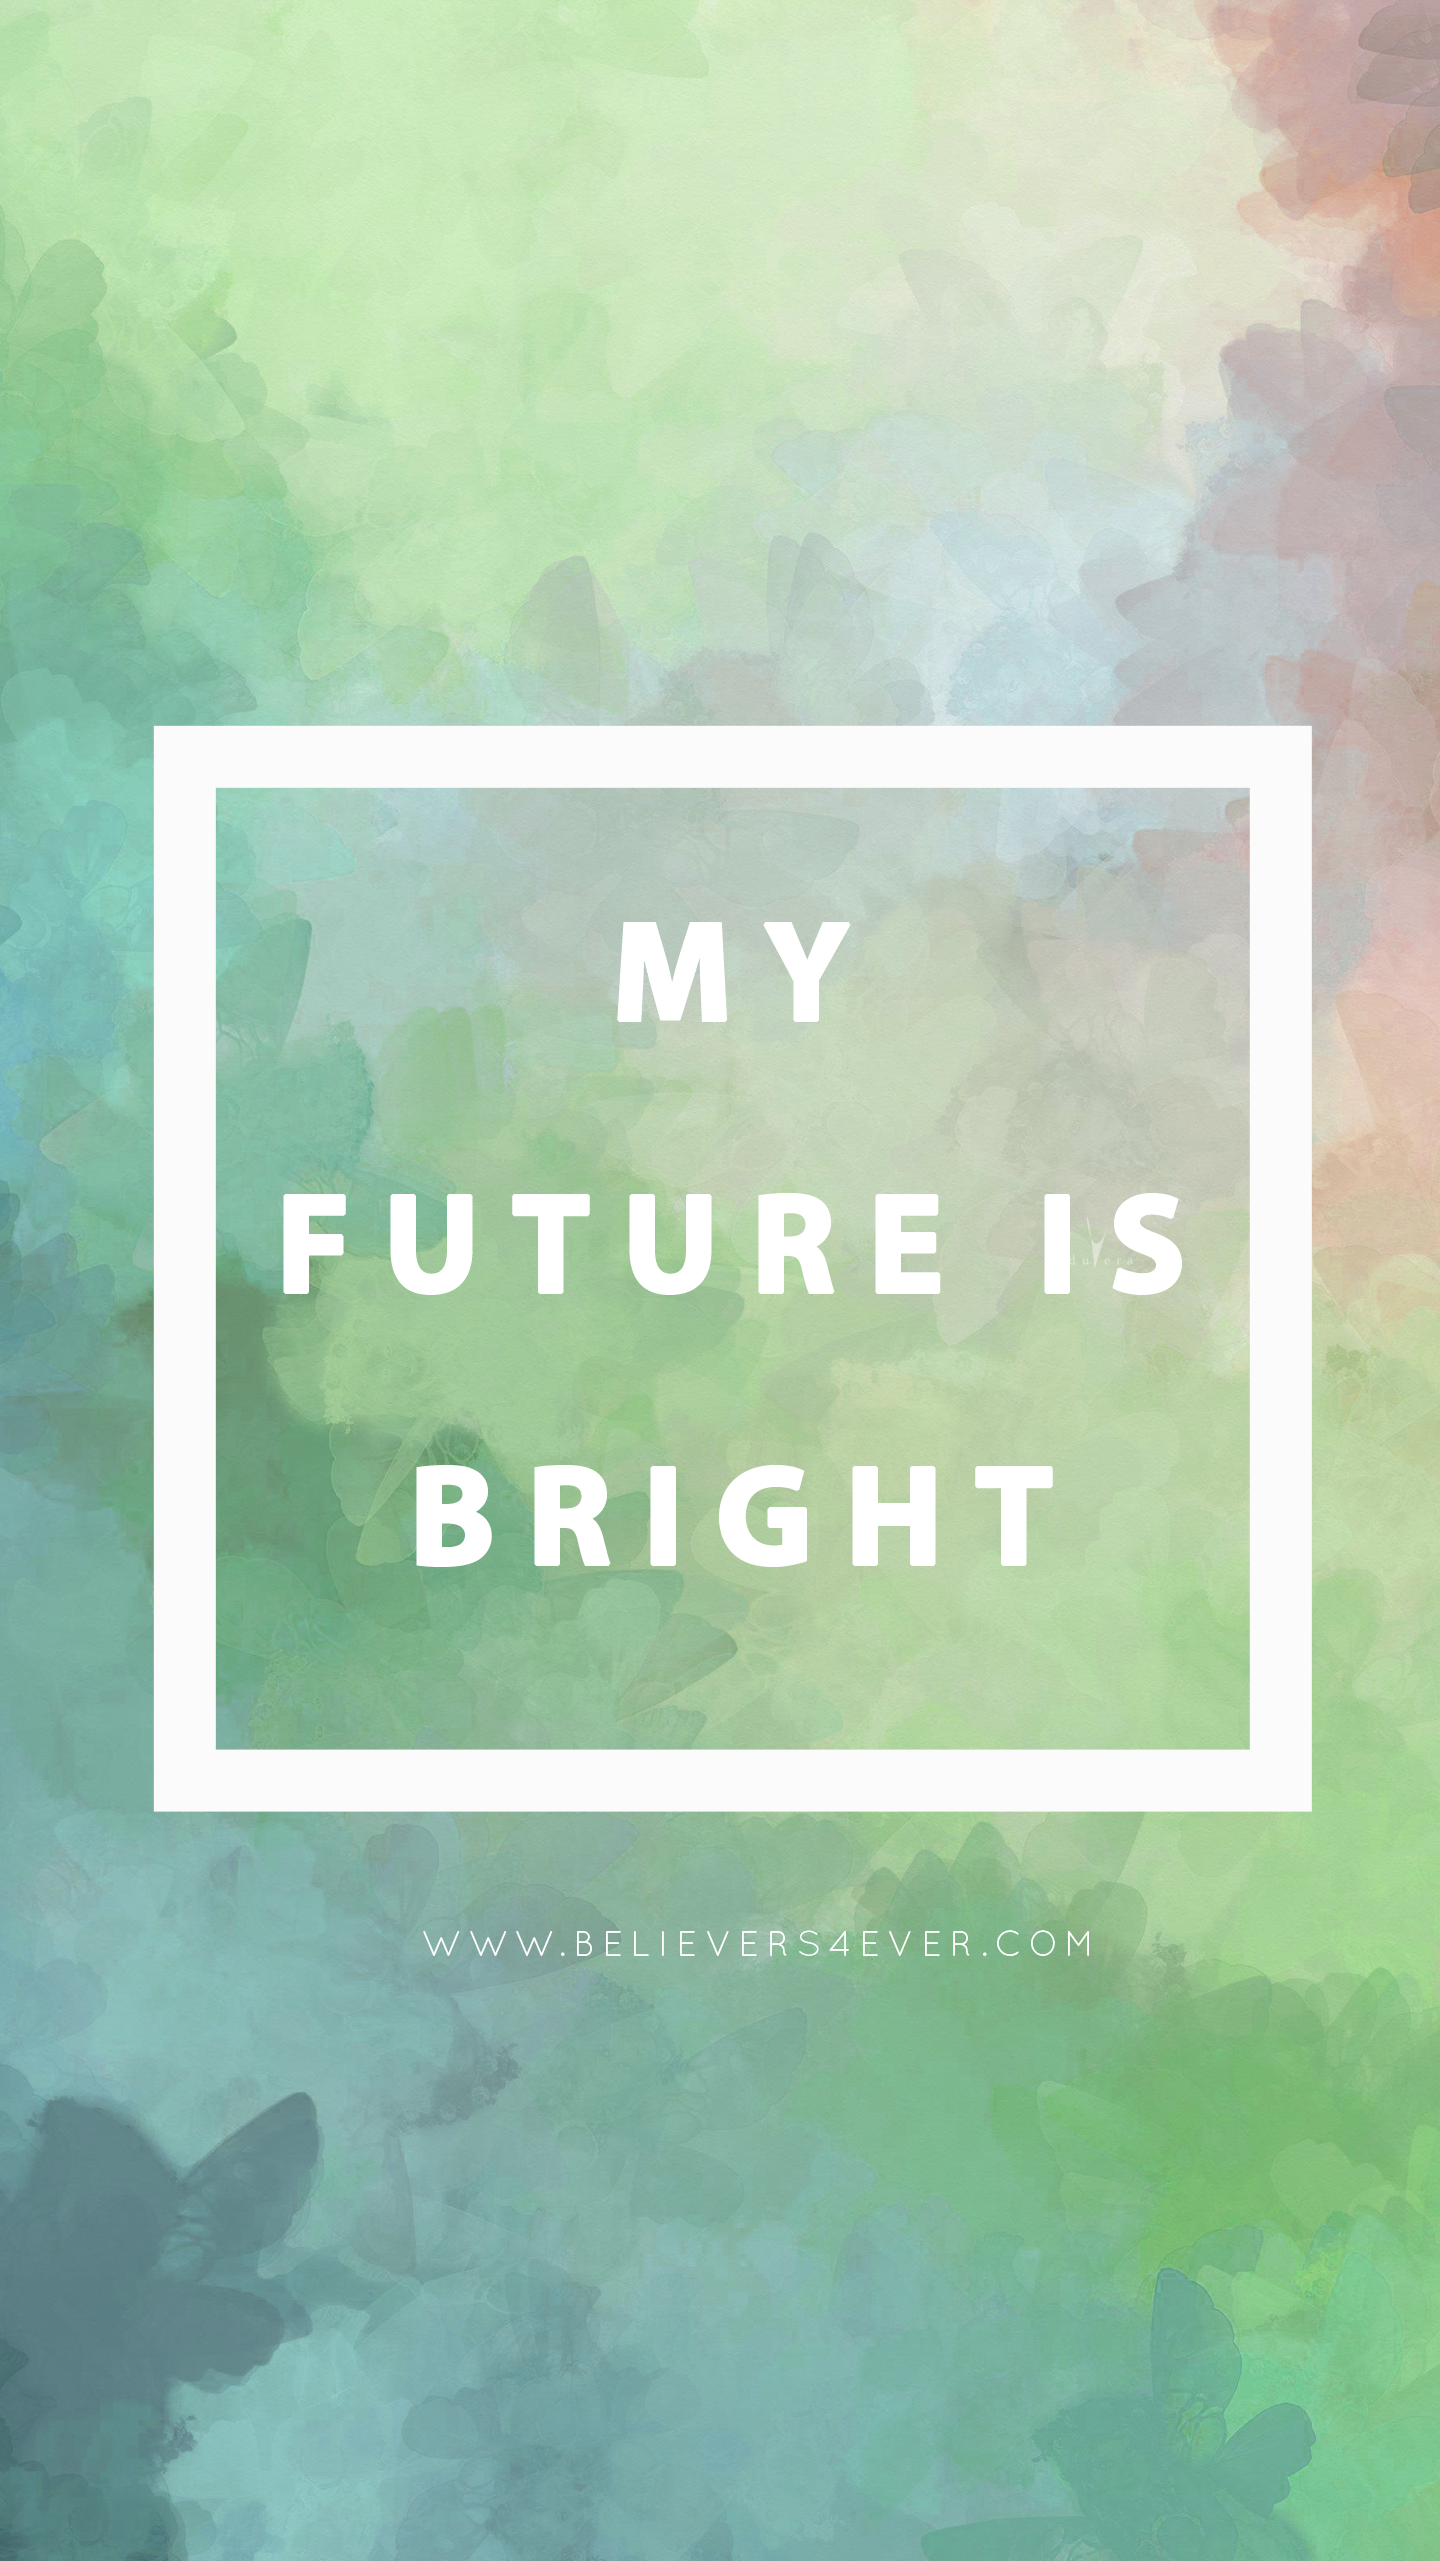 Bright future green Christian mobile lockscreen wallpaper for free